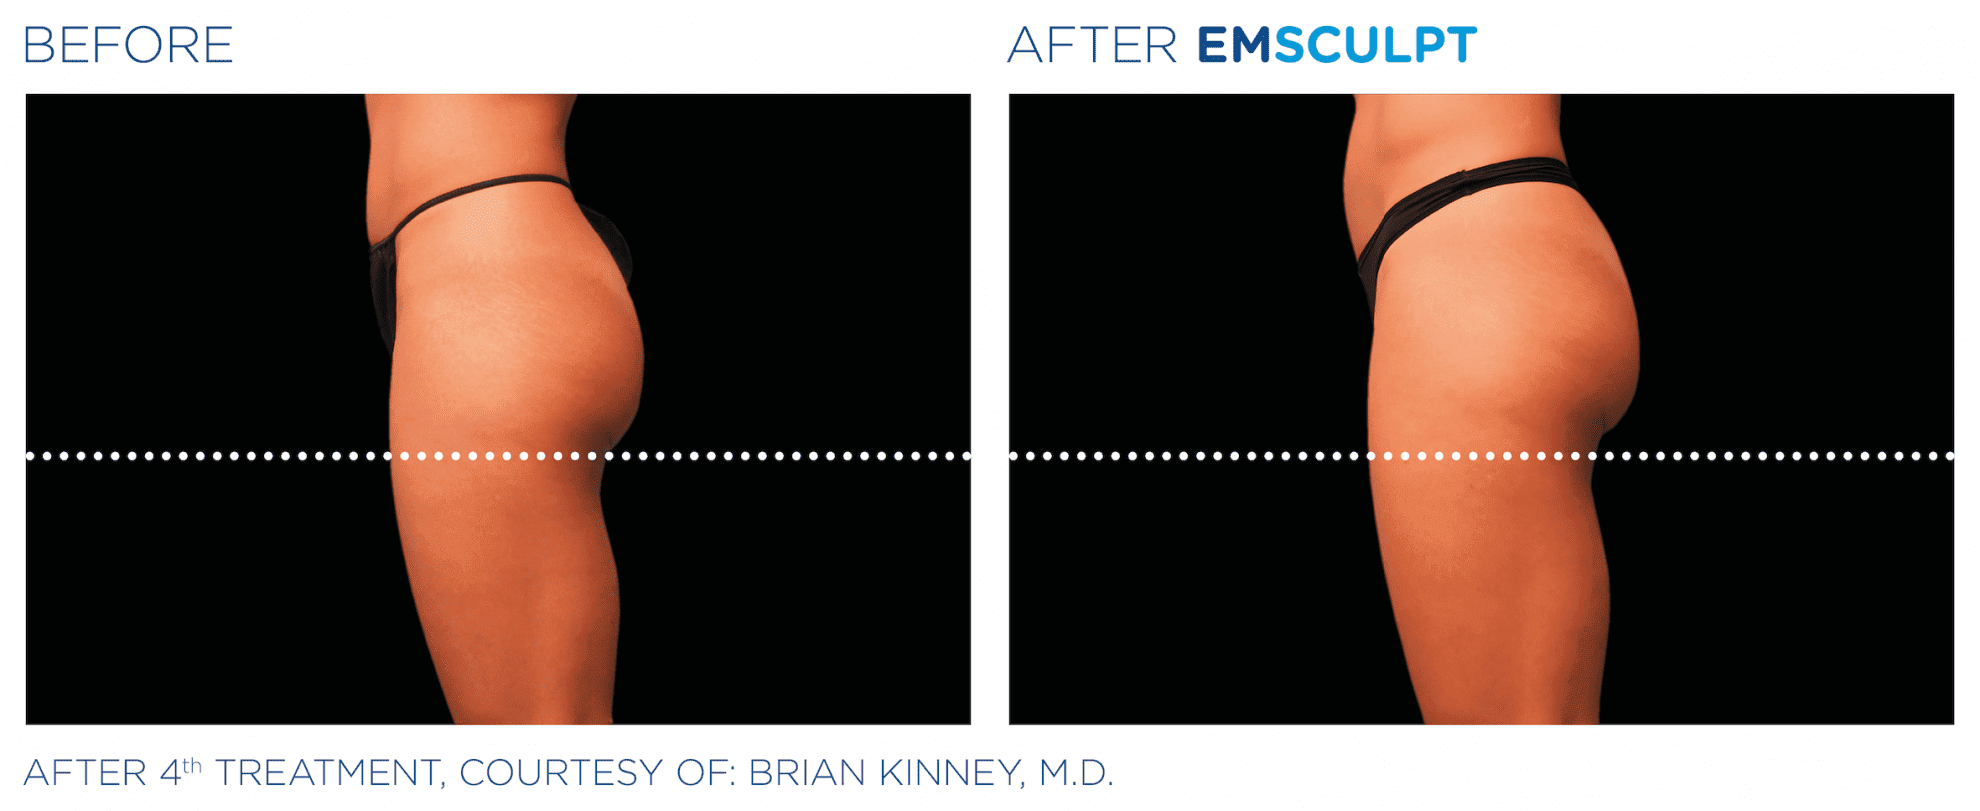 EMSculpt-build-muscle-burn-fat-at-S-Thetics-Aesthetic-Clinic-in-Beaconsfield-Buckinghamshire